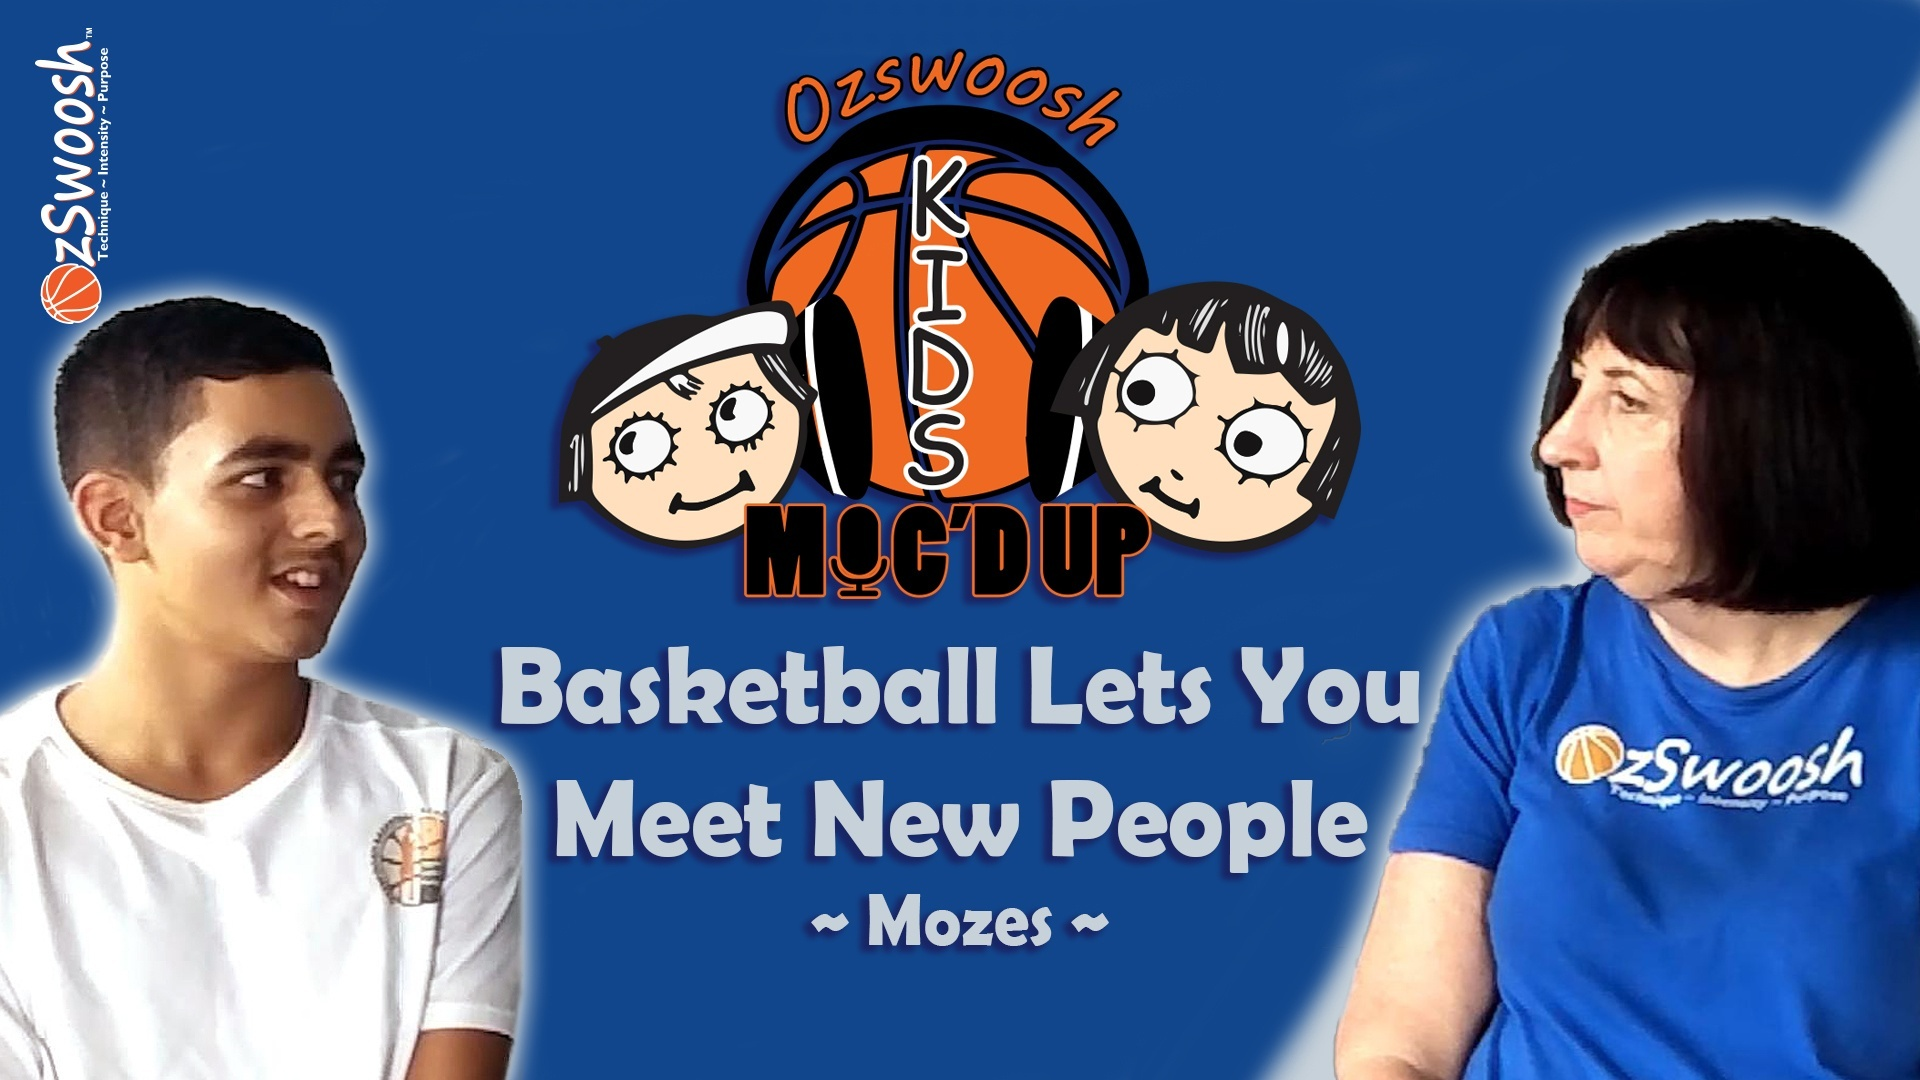 Meet new people with basketball kids interview